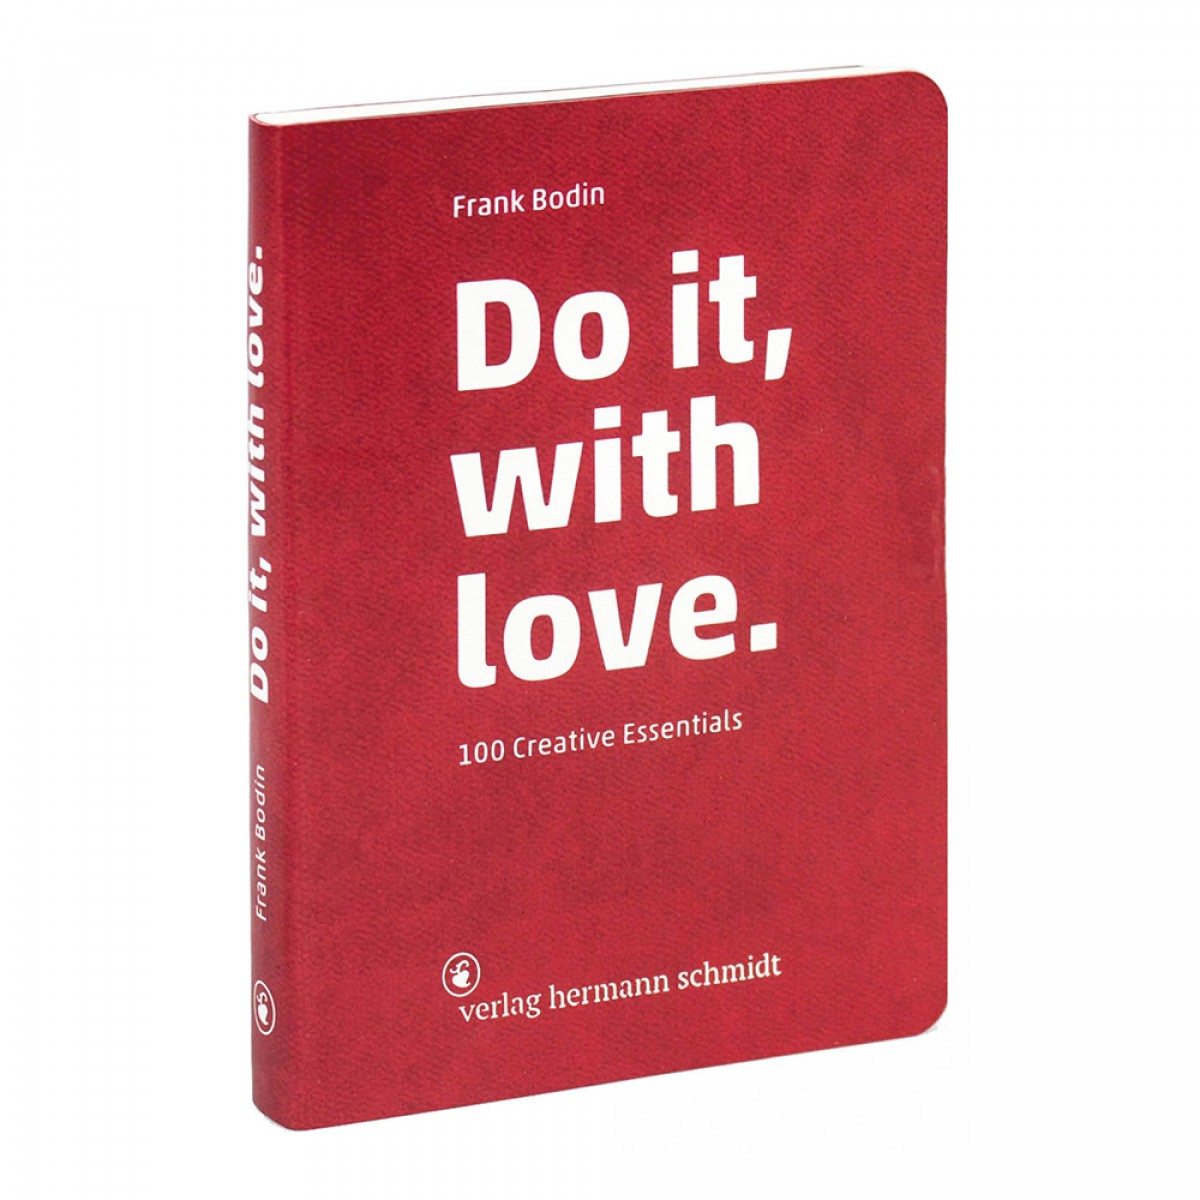 Frank Bodin »Do it, with love – 100 Creative Essentials«